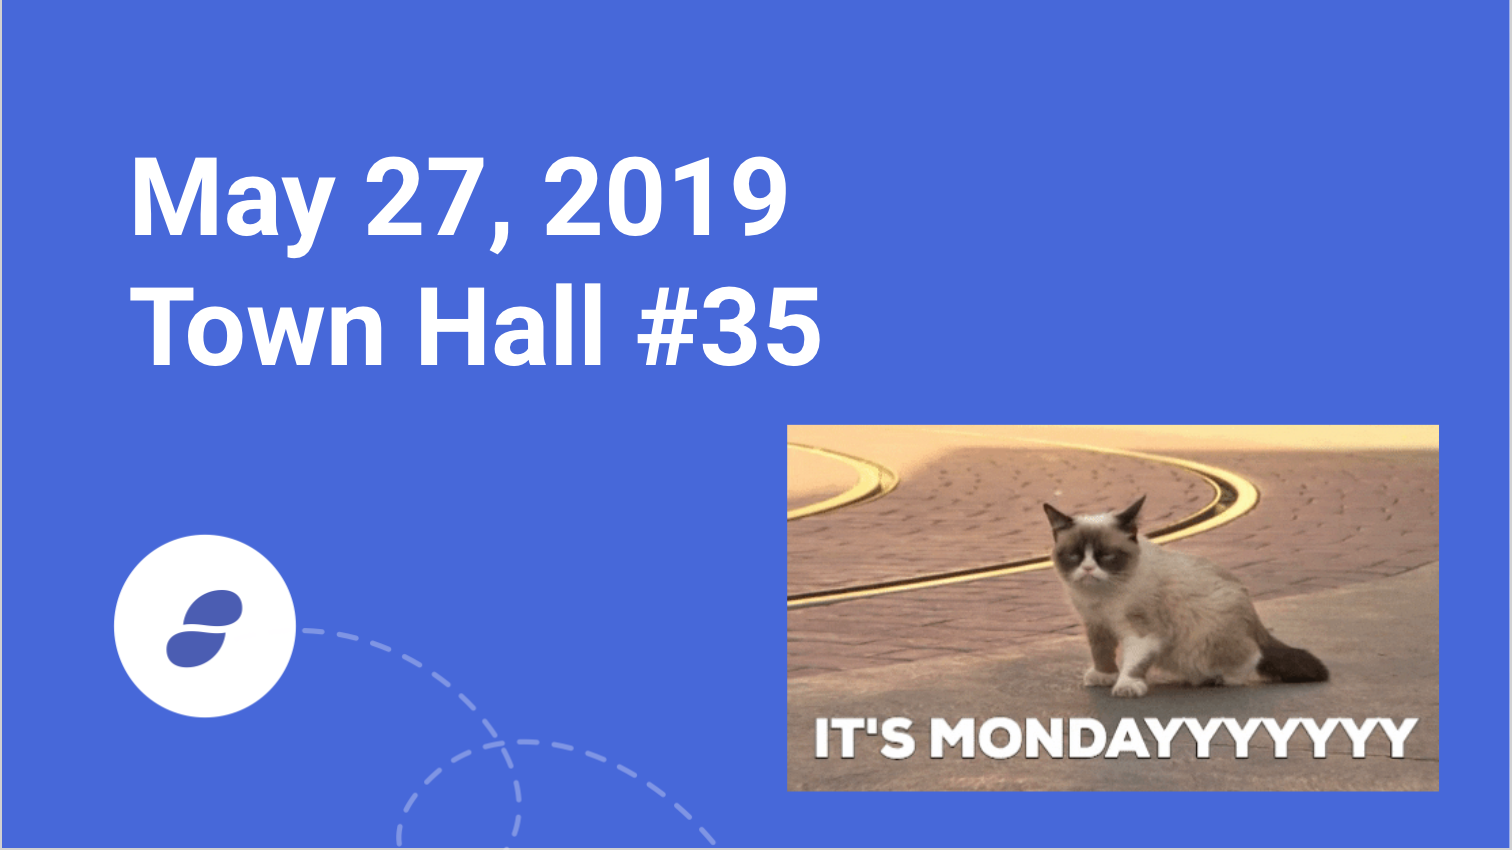 Townhall #35 - Monday May 27, 2019